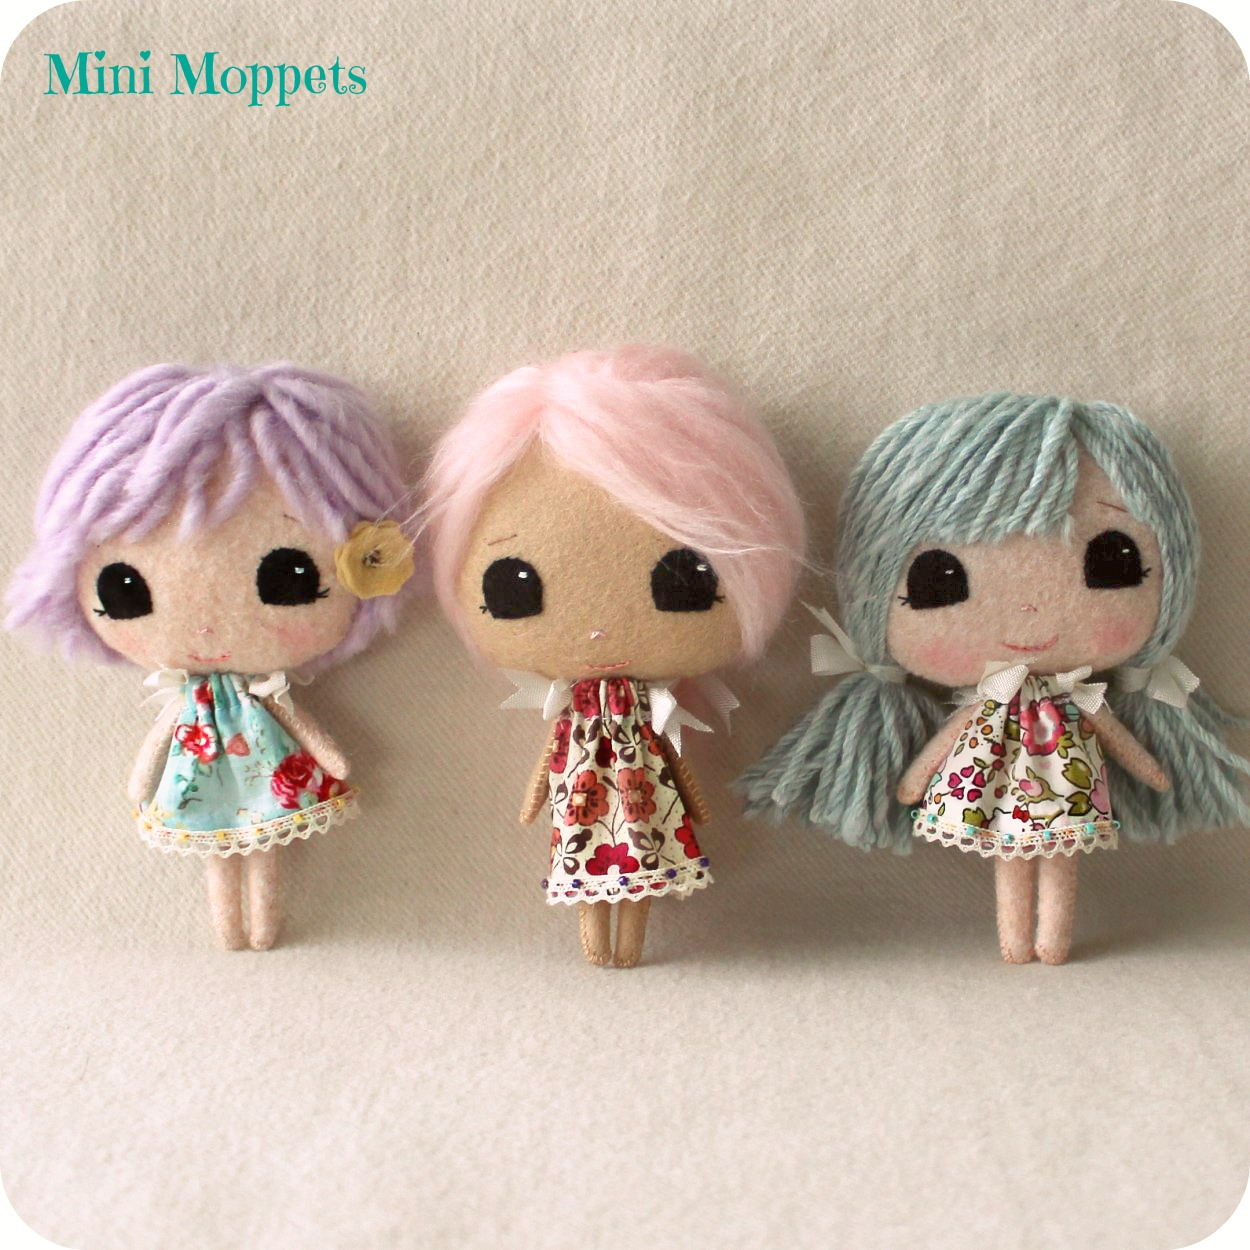 Small Toy Dolls : Gingermelon dolls free paper doll download and the mini